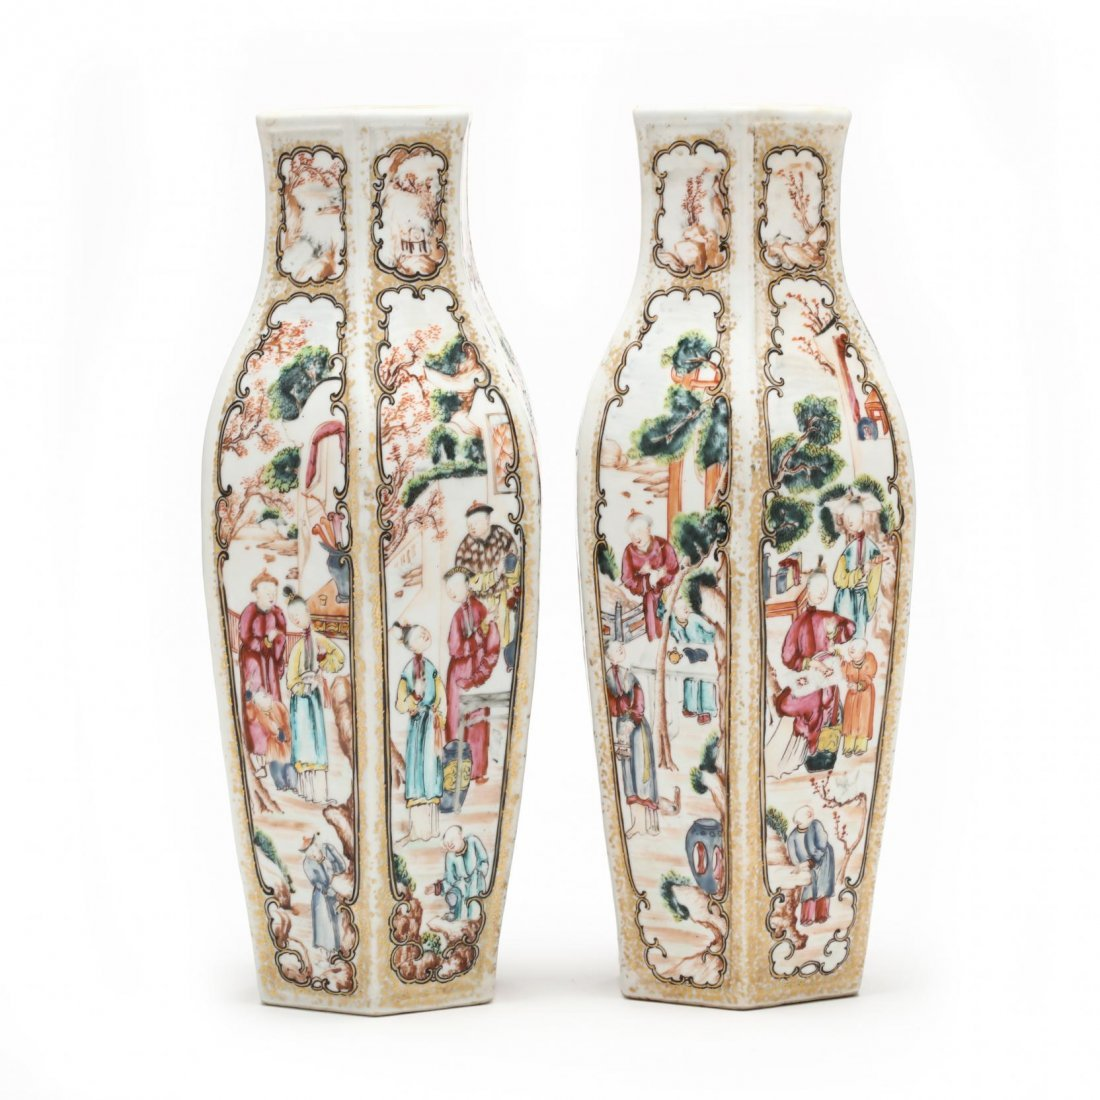 Pair of Chinese Export Vases - 2